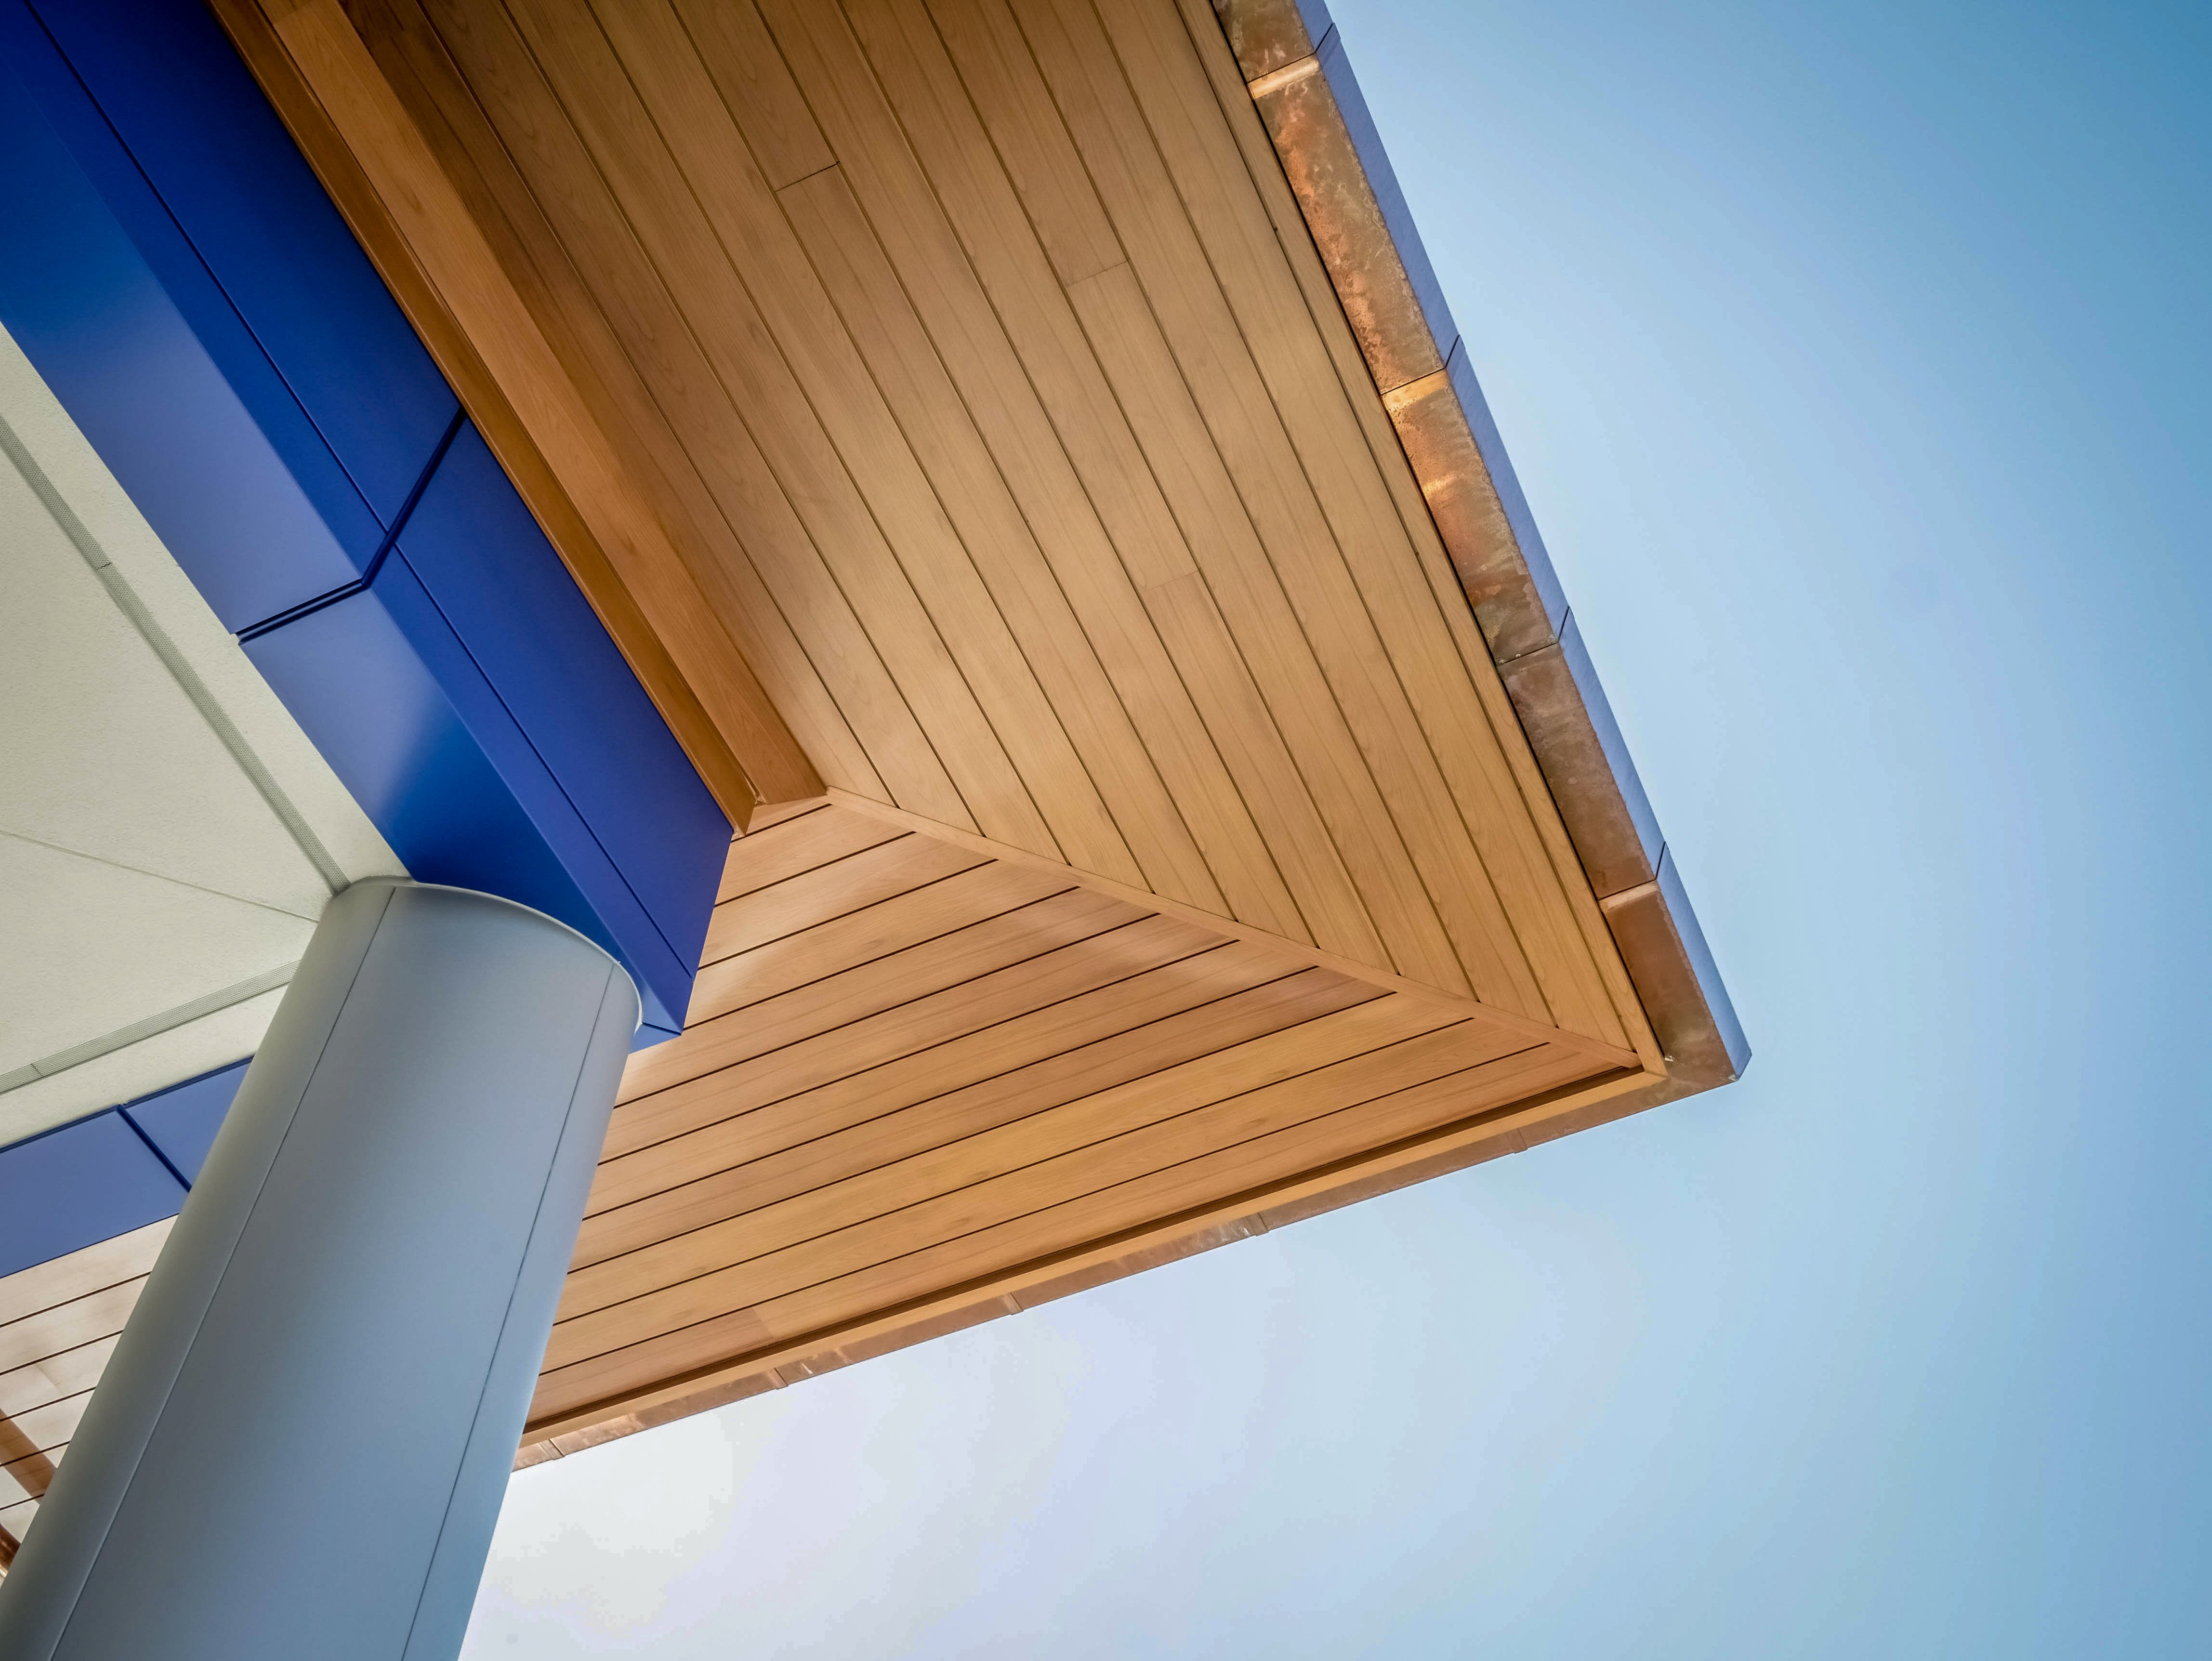 , Soffits, Knotwood Architectural Products, Knotwood Architectural Products